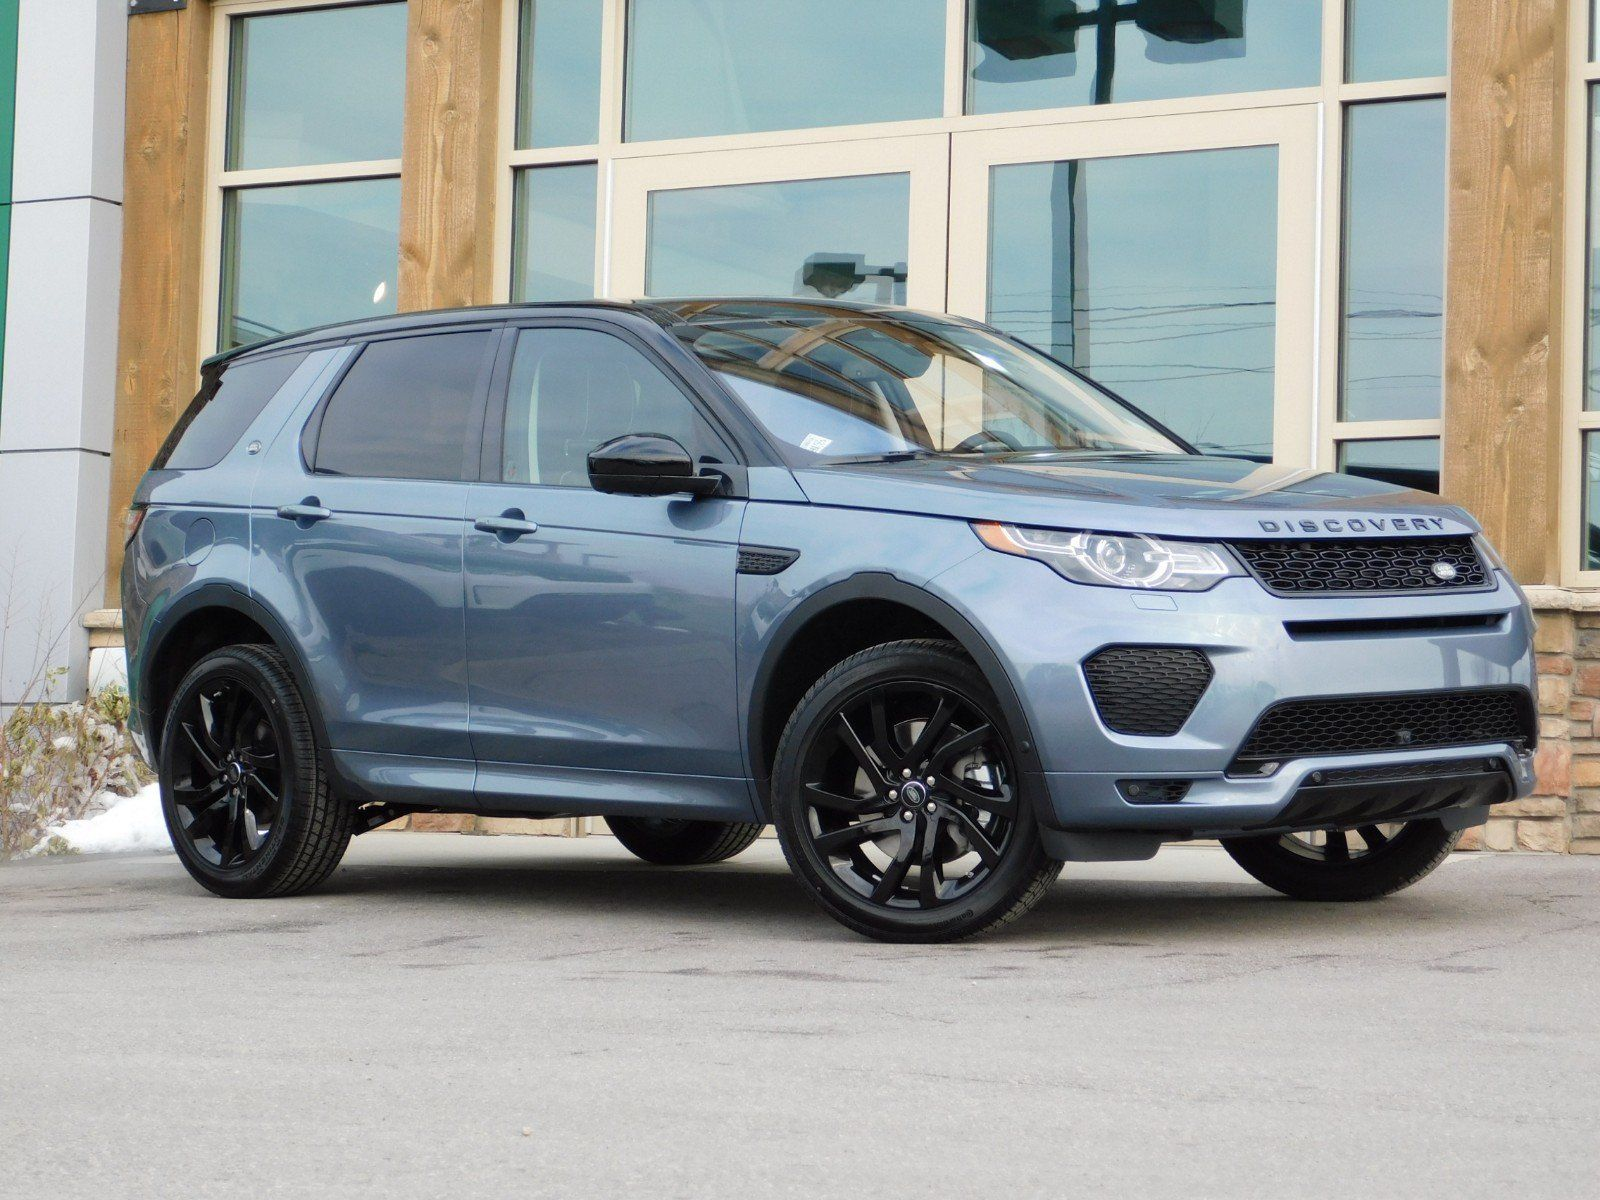 Land Rover Discovery Sport Front Brush Guard Google Search Land Rover Discovery Sport Land Rover Discovery Land Rover